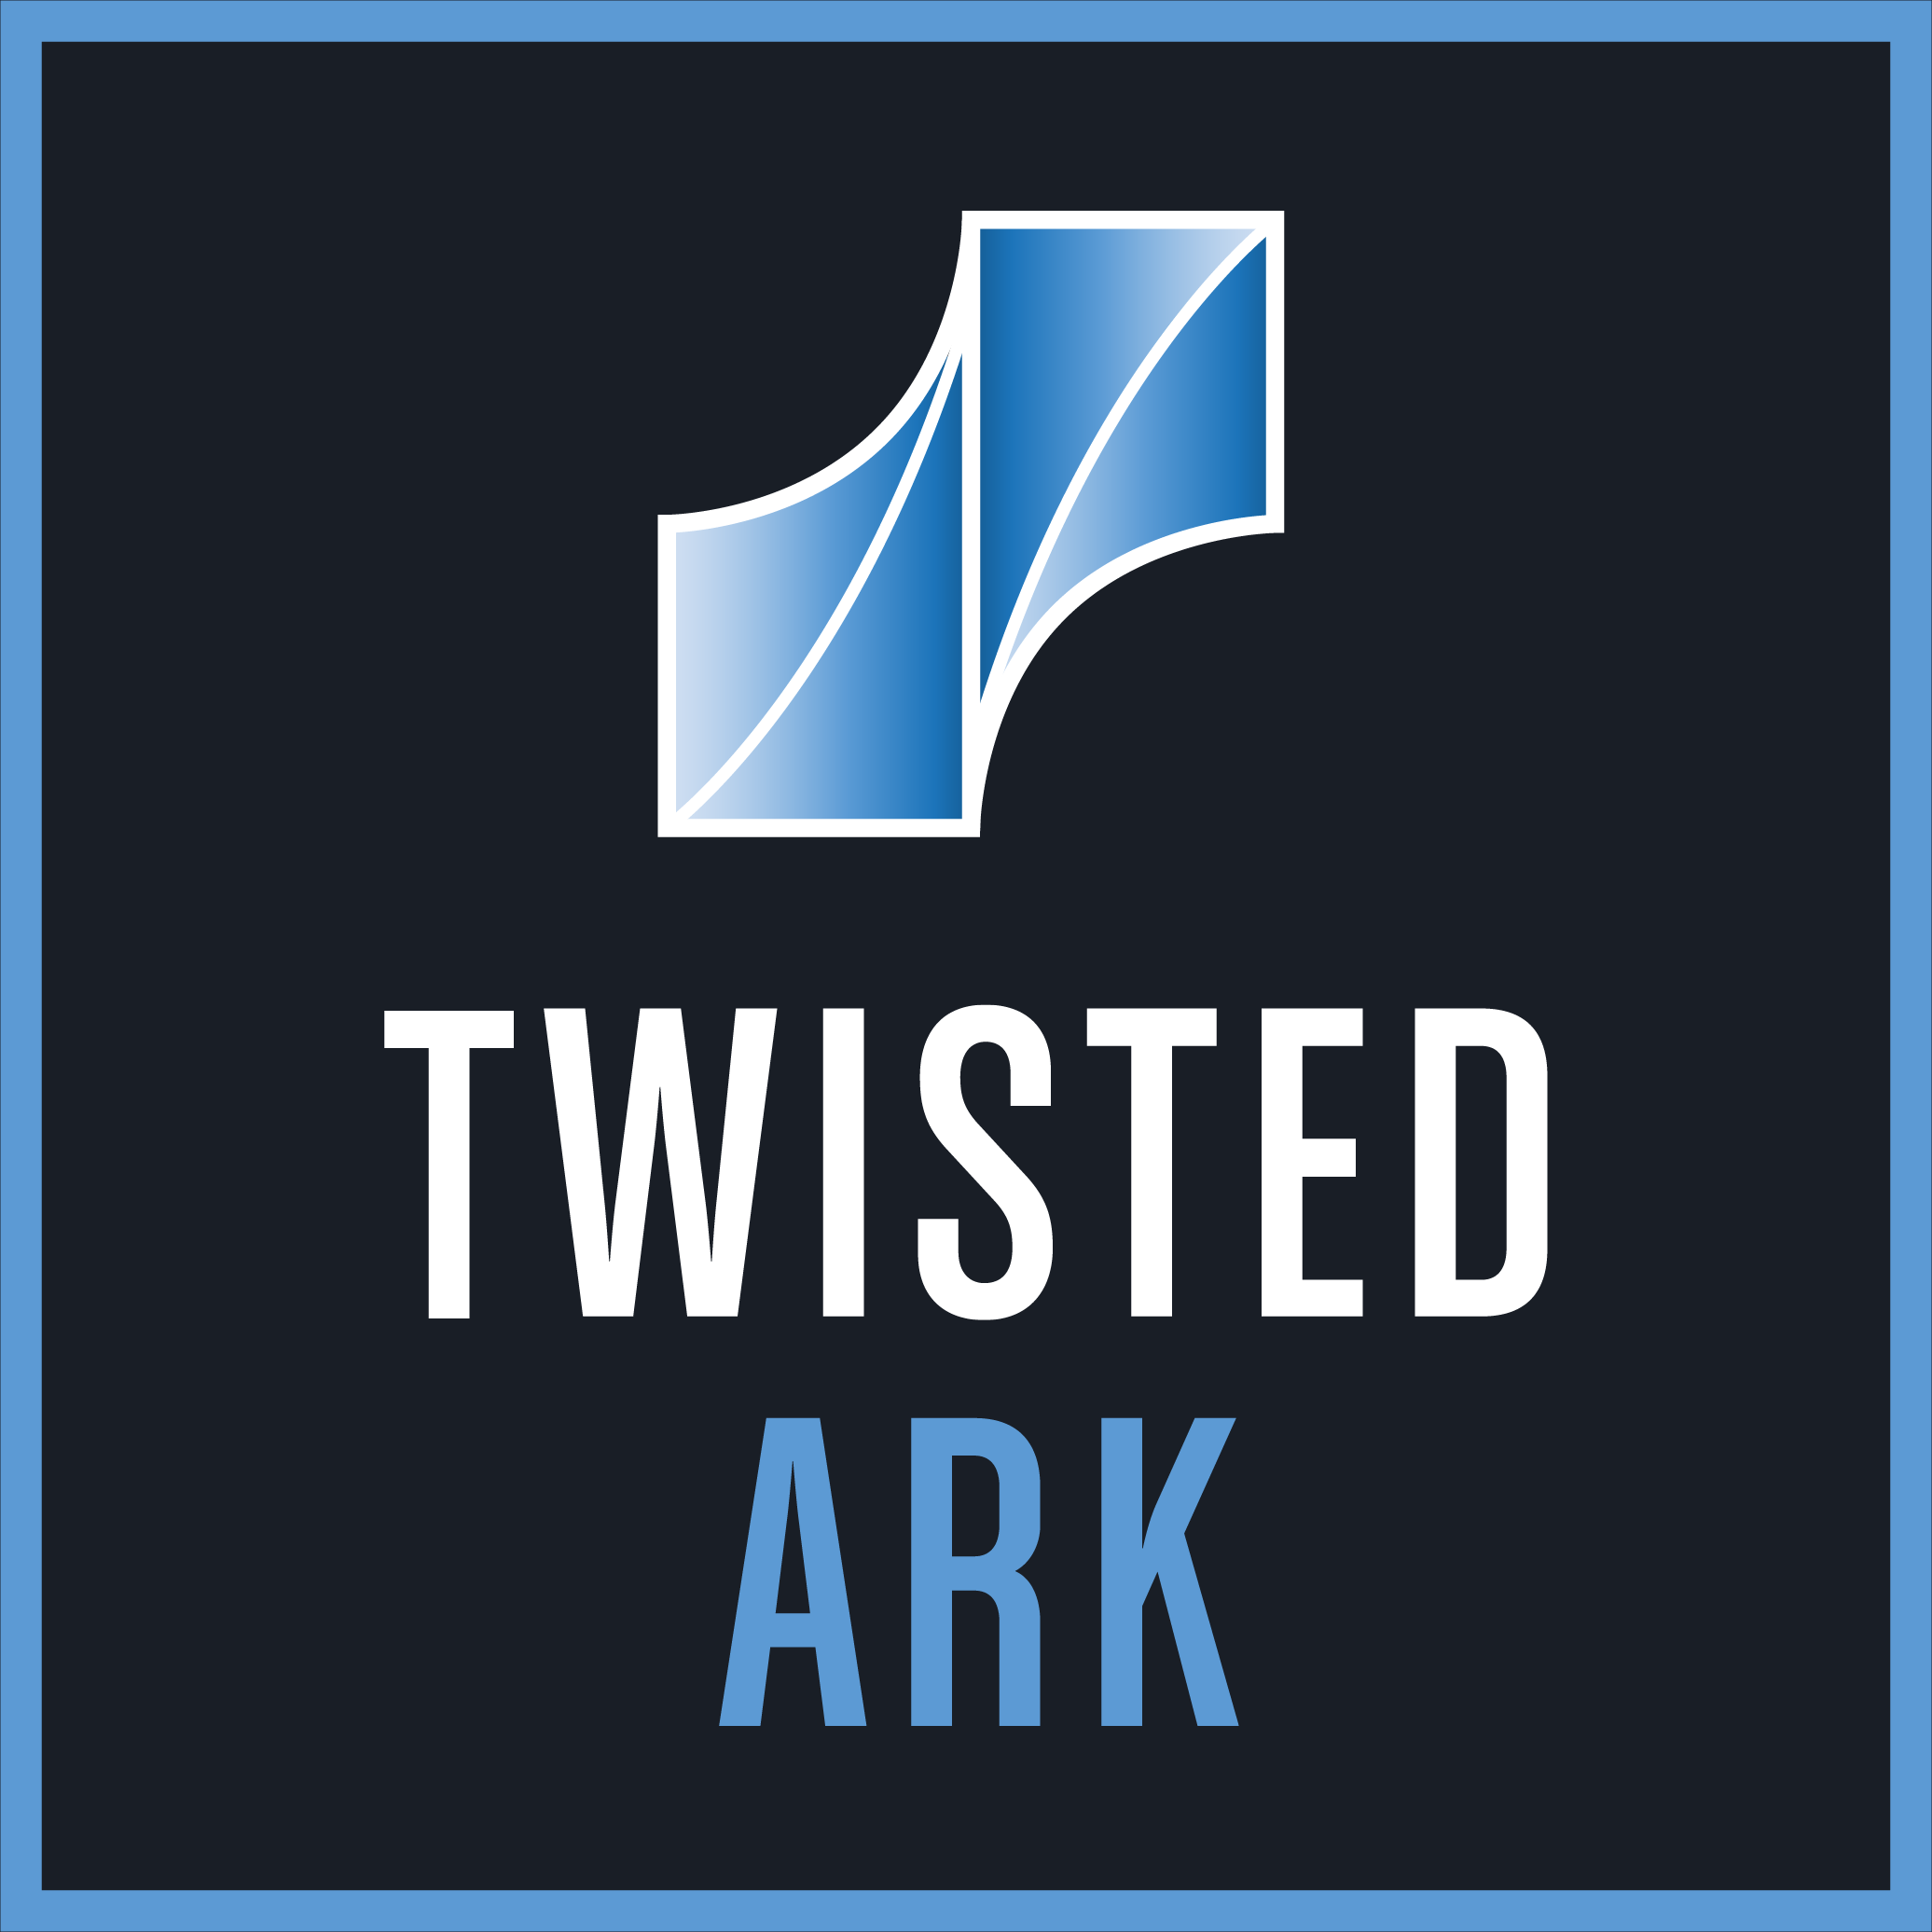 Twisted_Ark_Square_Color_Blue_Outline_RGB_PNG